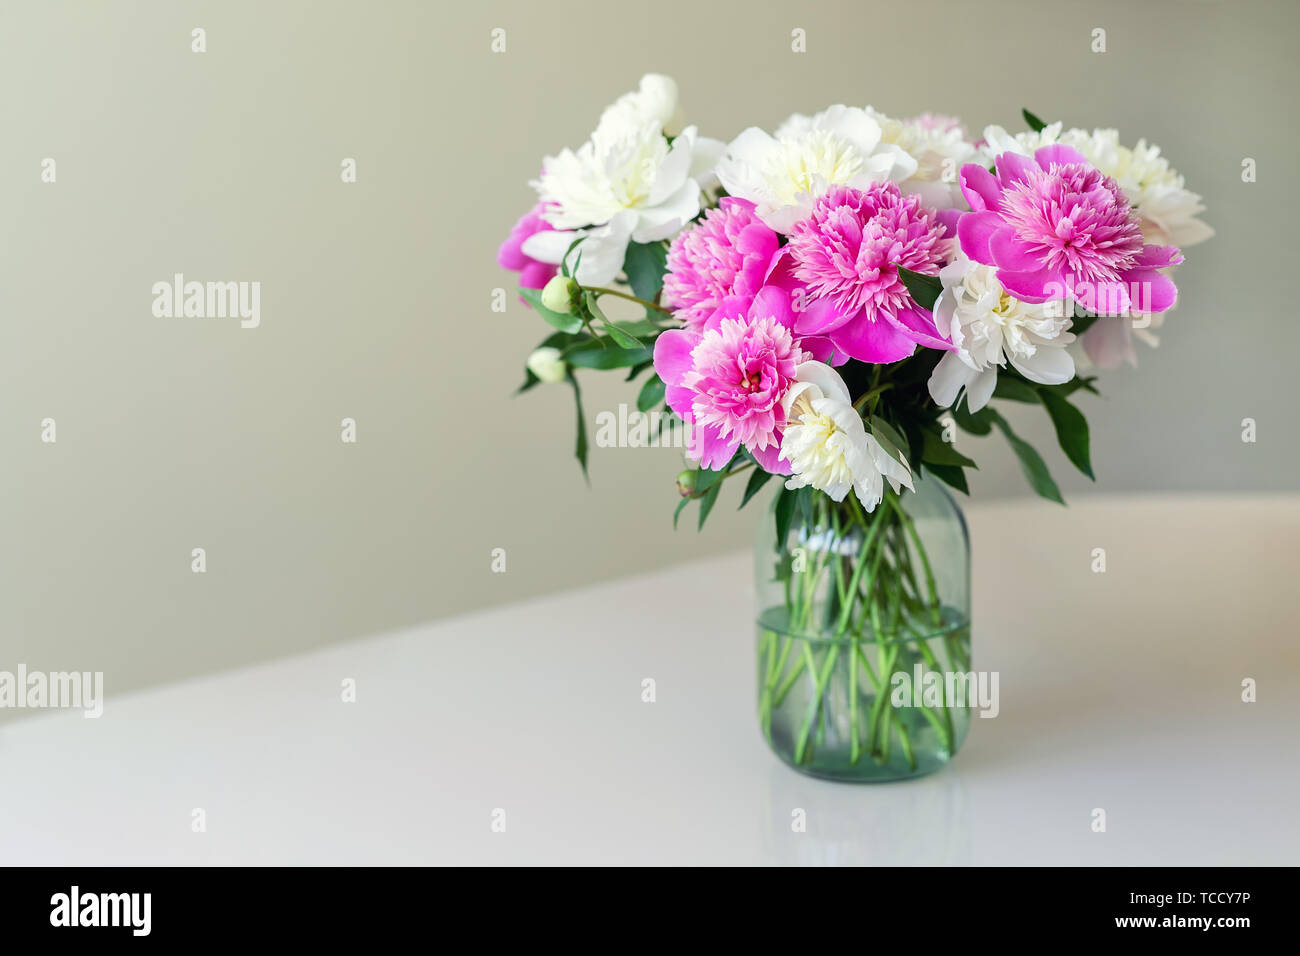 Alamy & Simple Flower Vase Peony Stock Photos \u0026 Simple Flower Vase Peony ...